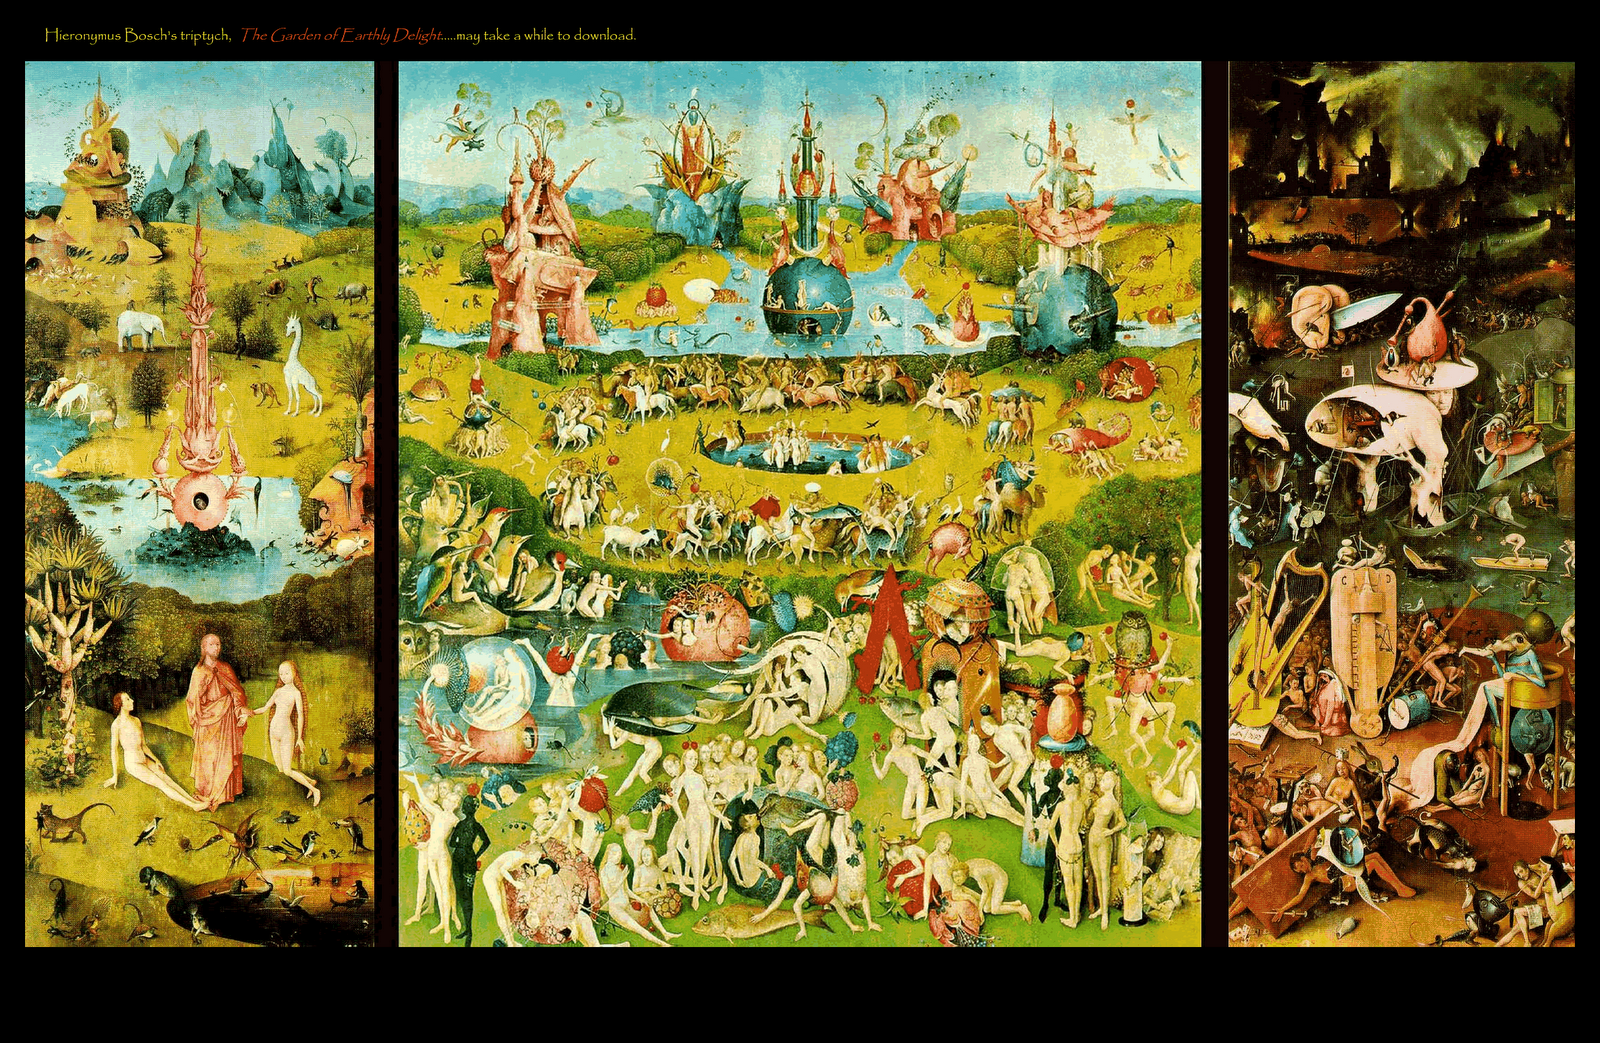 Dantes divine comedy symbolism and archetypes stottilien dantes inferno lust bosch garden buycottarizona